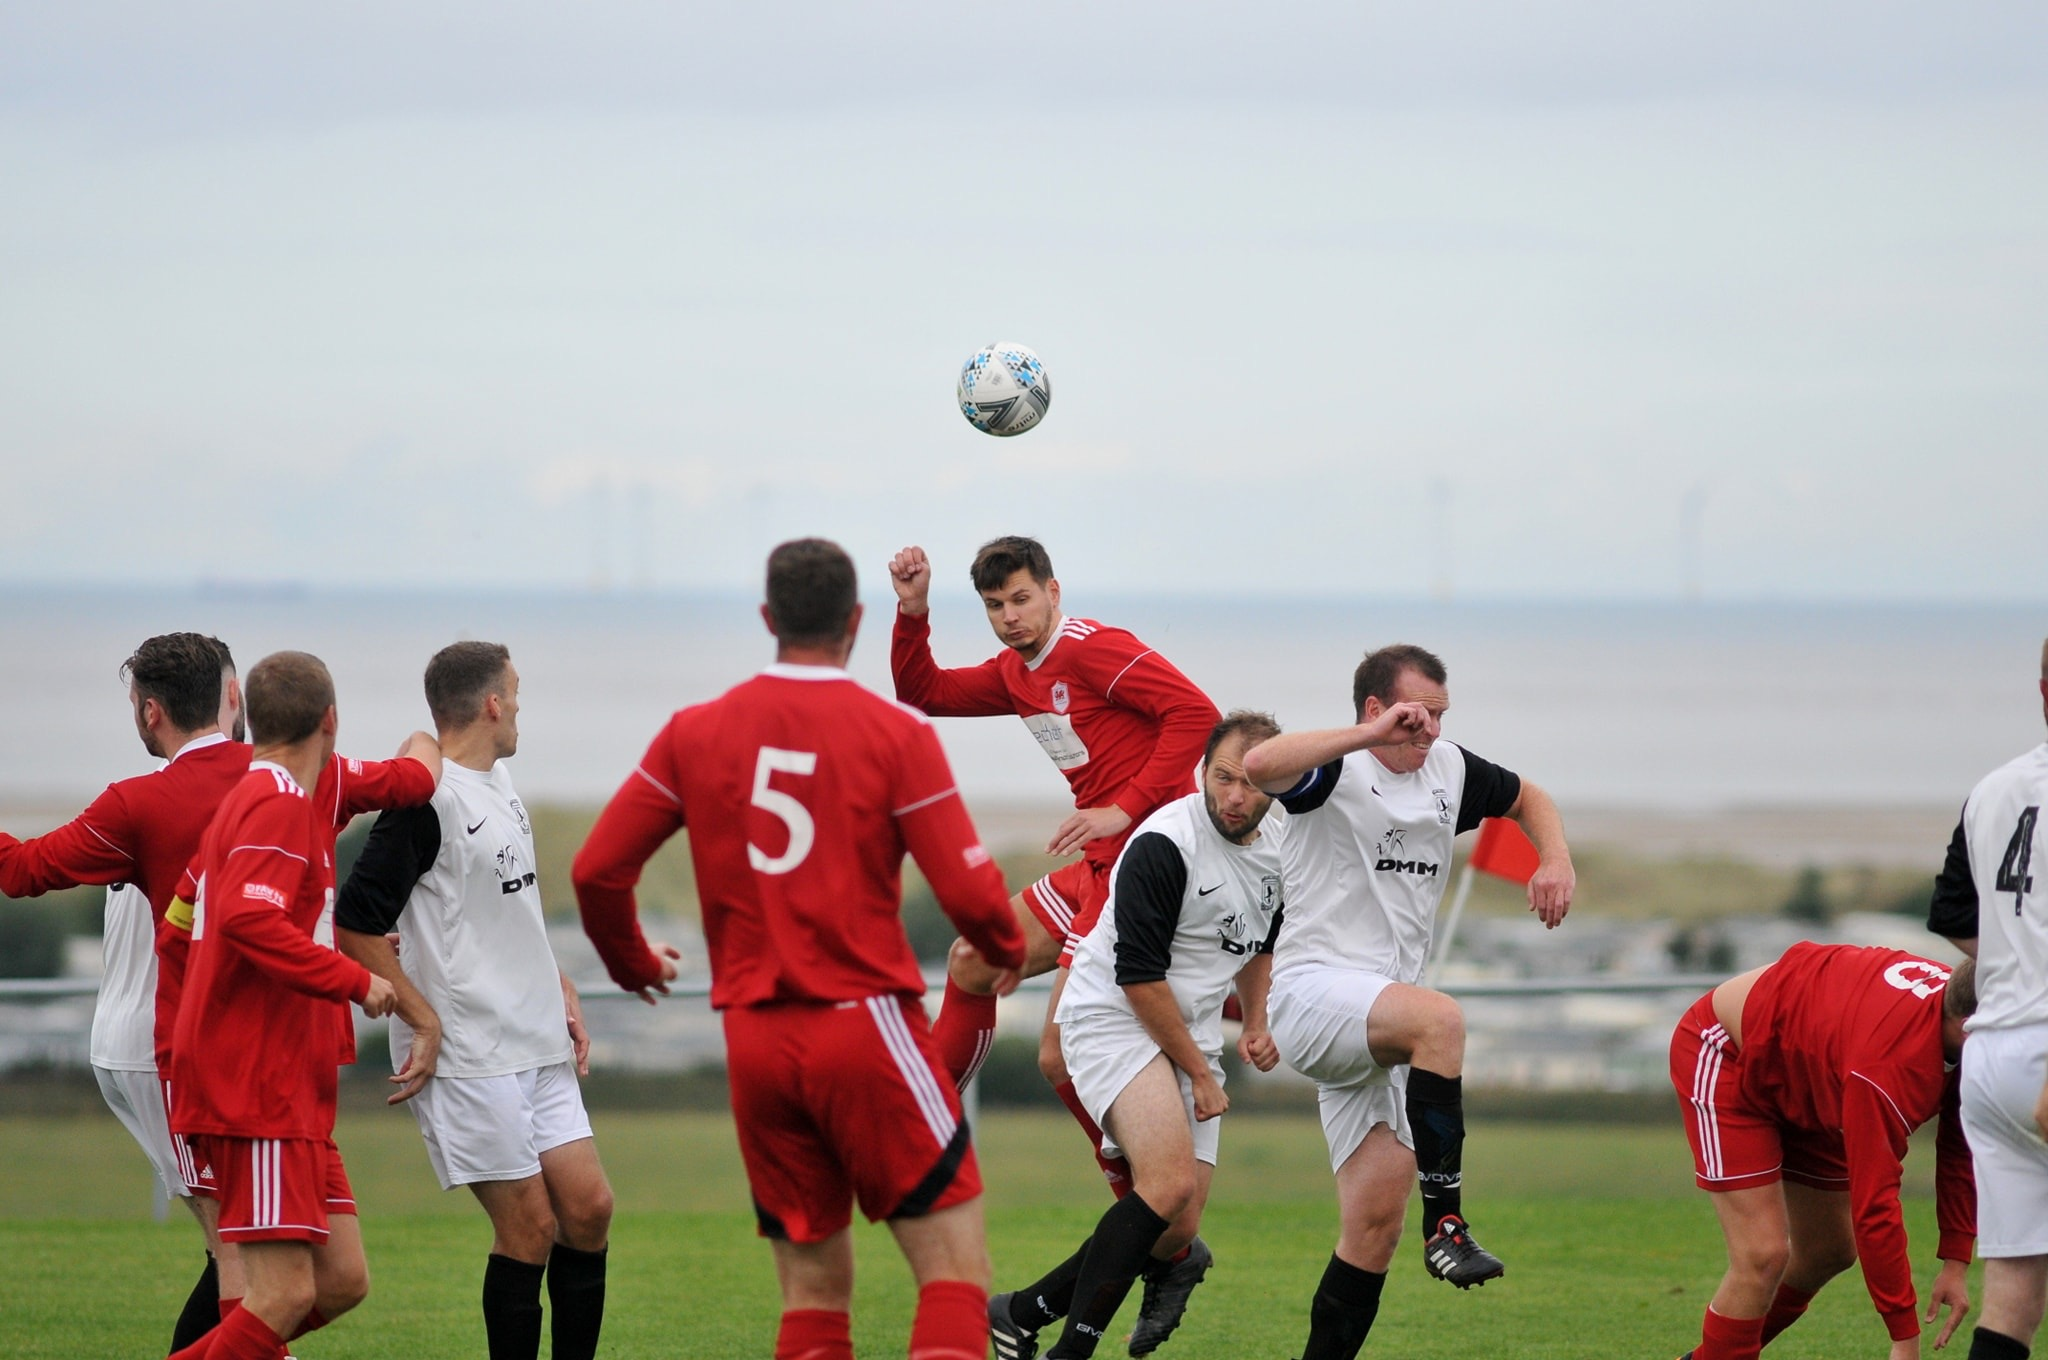 Action from Prestatyn Sports' win over Llanrug United (Photo: Damon Mead)